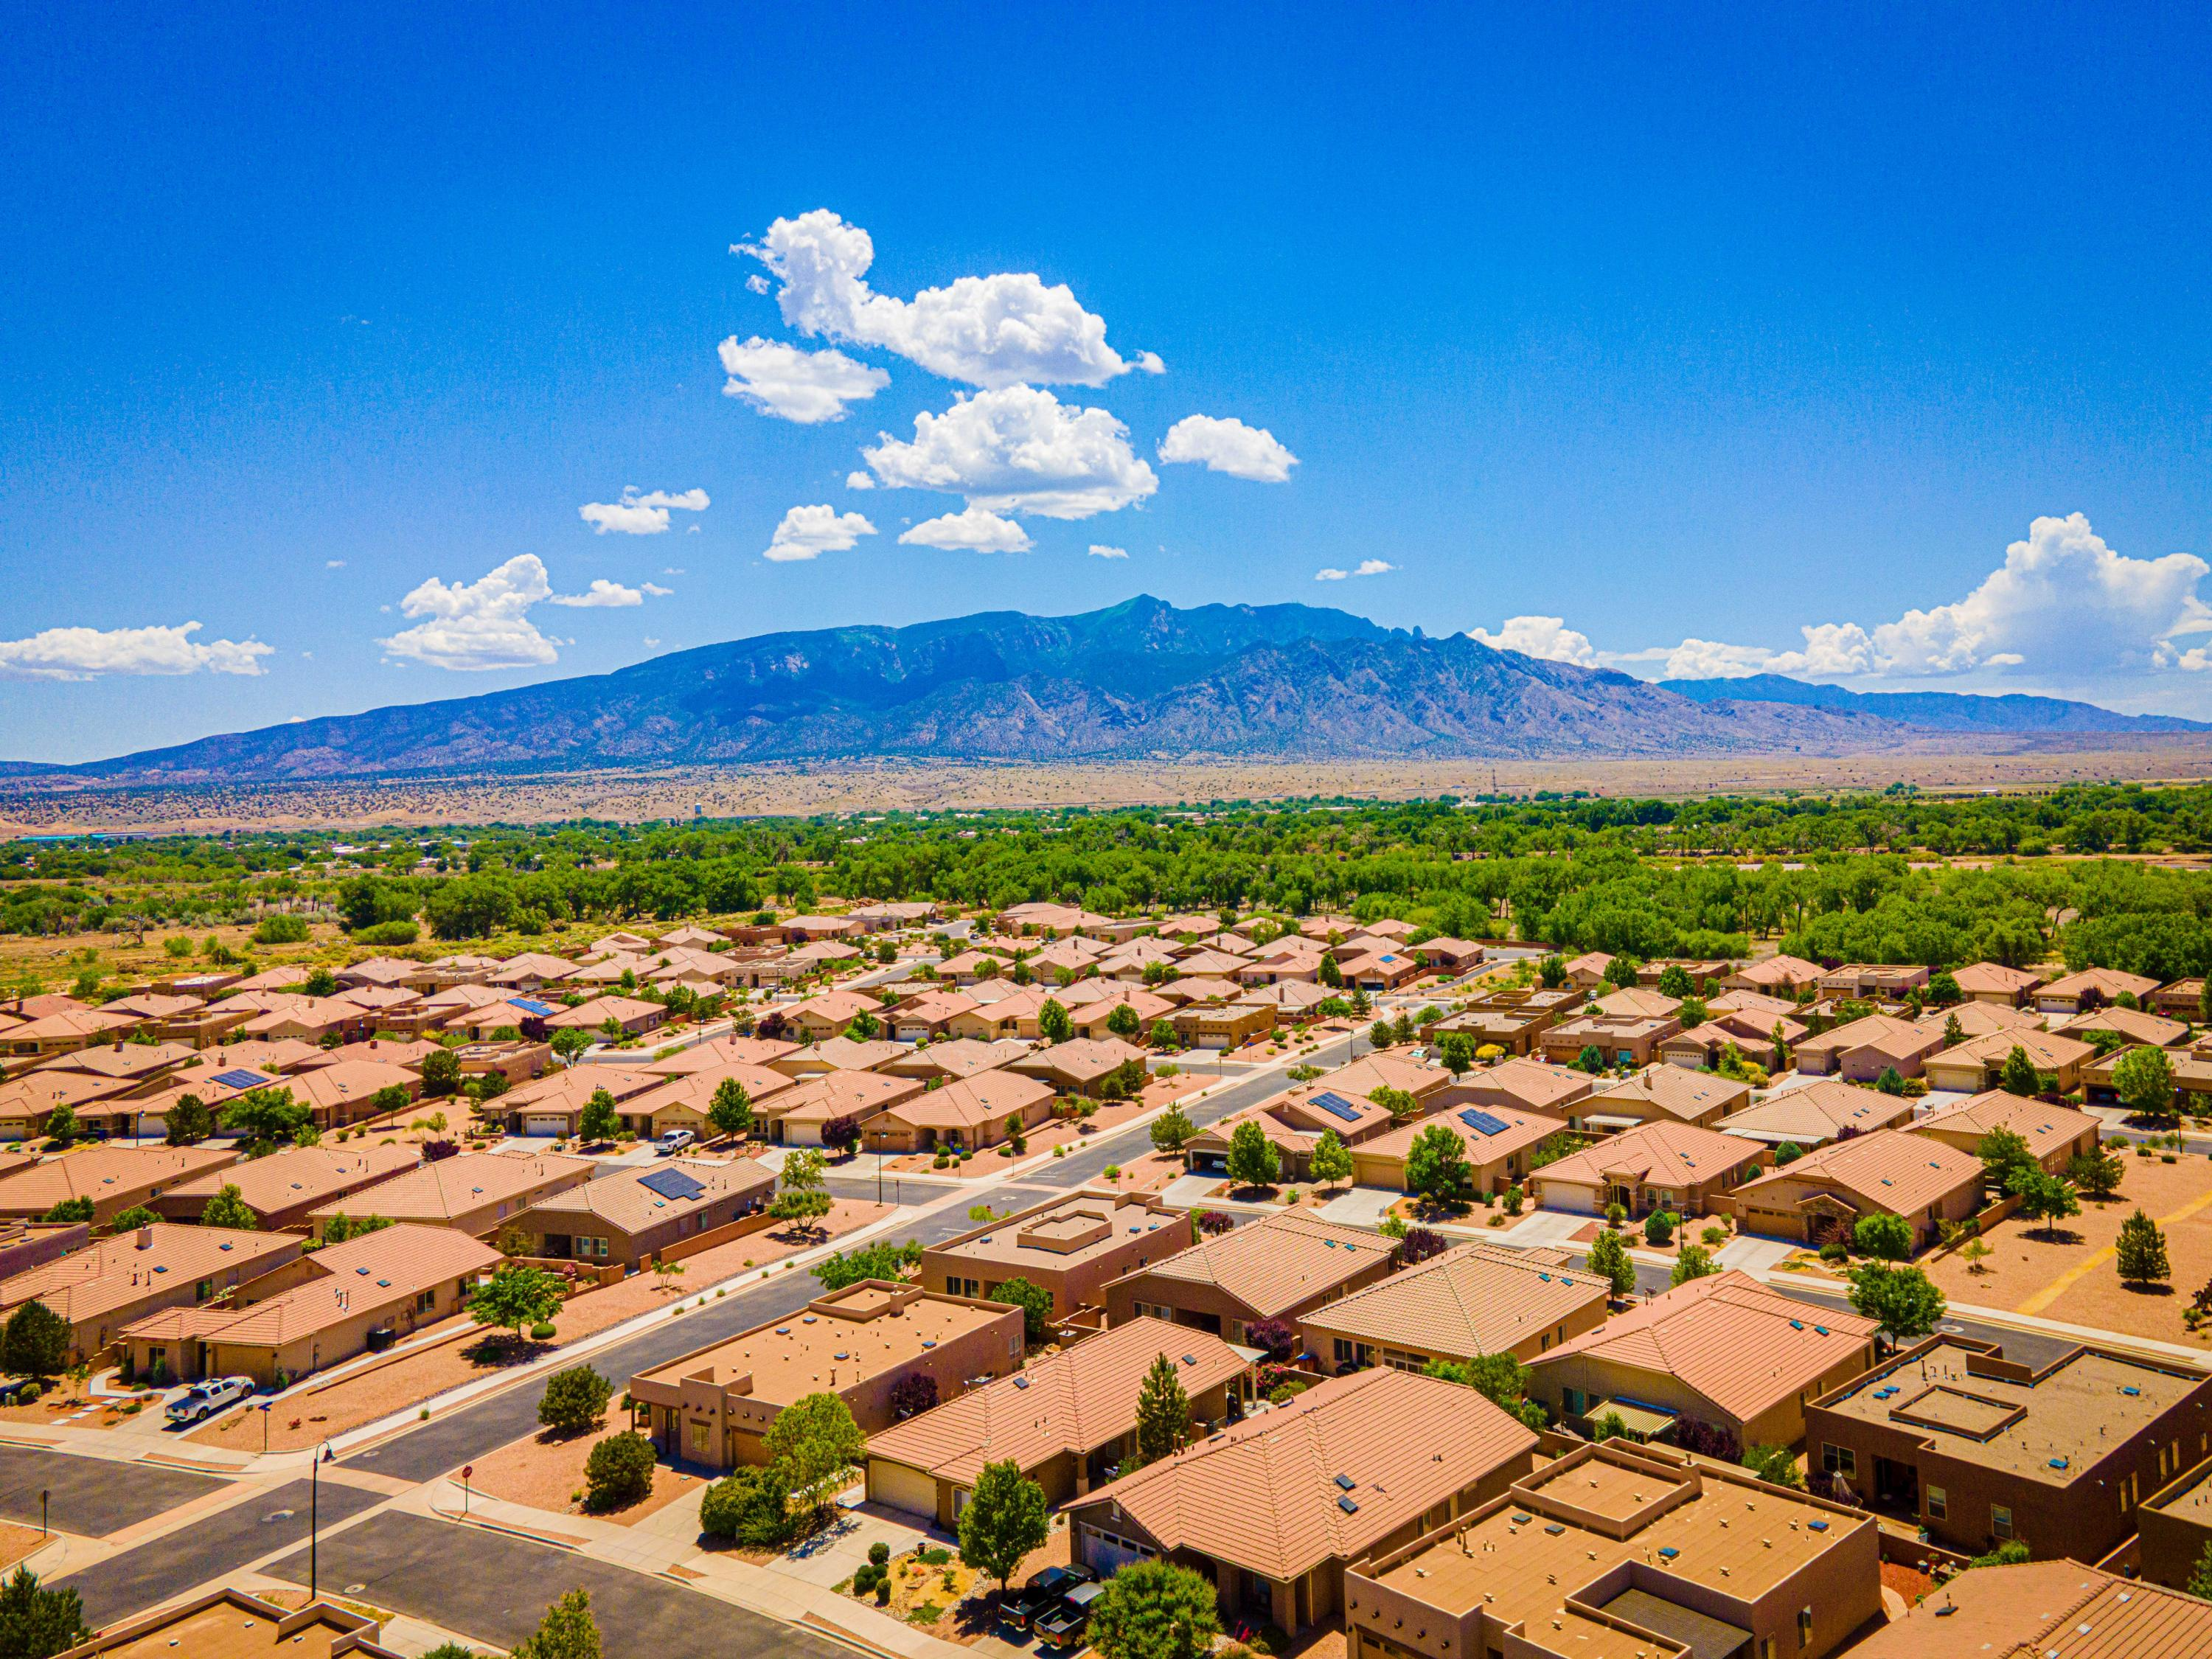 Welcome to Del Webb Alegria, a 55+ gated community!  This Popular 'TAOS' model floorplan sits on a corner lot which has gorgeous professional landscaping and is across from the walking trail!  Home is 2156 SF and has 2 large Bedrooms plus an Office/Den, Dining Room, REF AIR, Gas Log FP, Large Kitchen w/beautiful cabinetry and lots of storage, Corian Counter-tops, Double Oven, Gas cook-top, Pantry, Island and nook! All appliances stay incl. washer and dryer.  Hot Tub in backyard conveys.  Many of the furnishings in the home are available. Home has had a home inspection and all repairs (very minor) are being addressed and corrected. You will enjoy the Clubhouse which has daily activities, indoor and outdoor pool, gym, etc!  Access to the Rio Grande Bosque too!  Home is move in ready!!